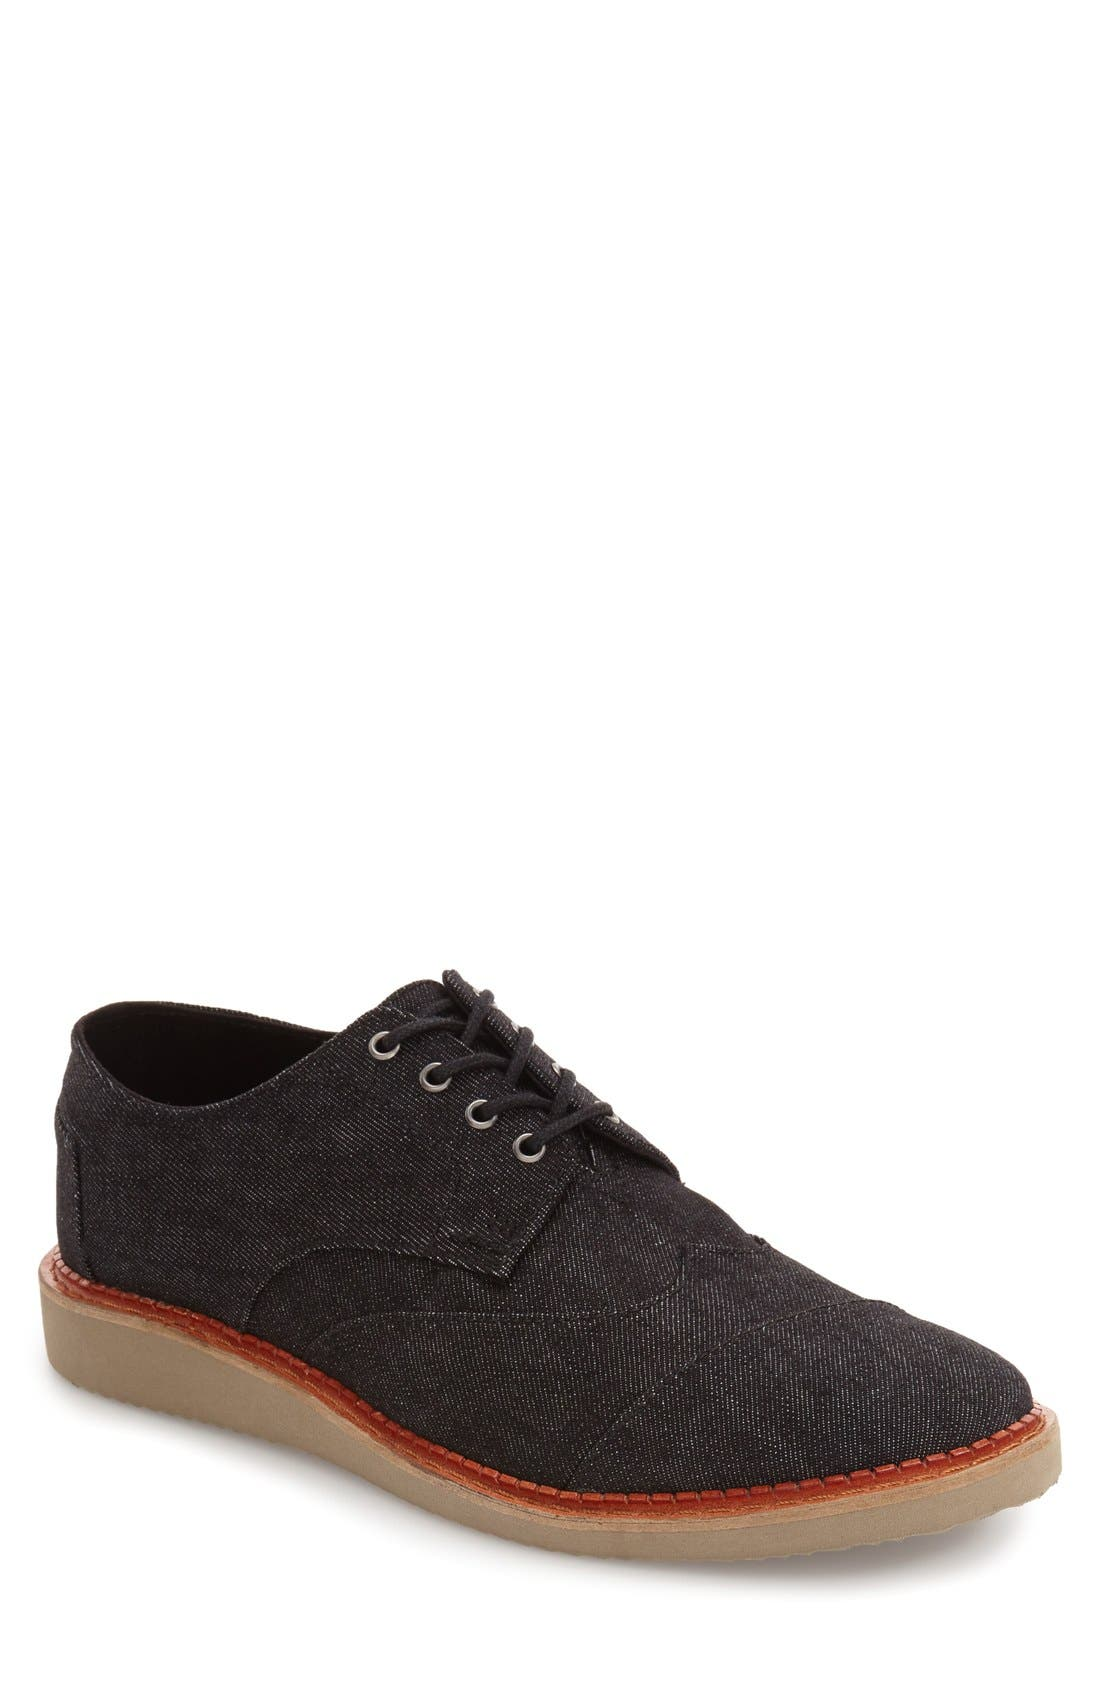 'Classic Brogue' Cotton Twill Derby,                             Main thumbnail 3, color,